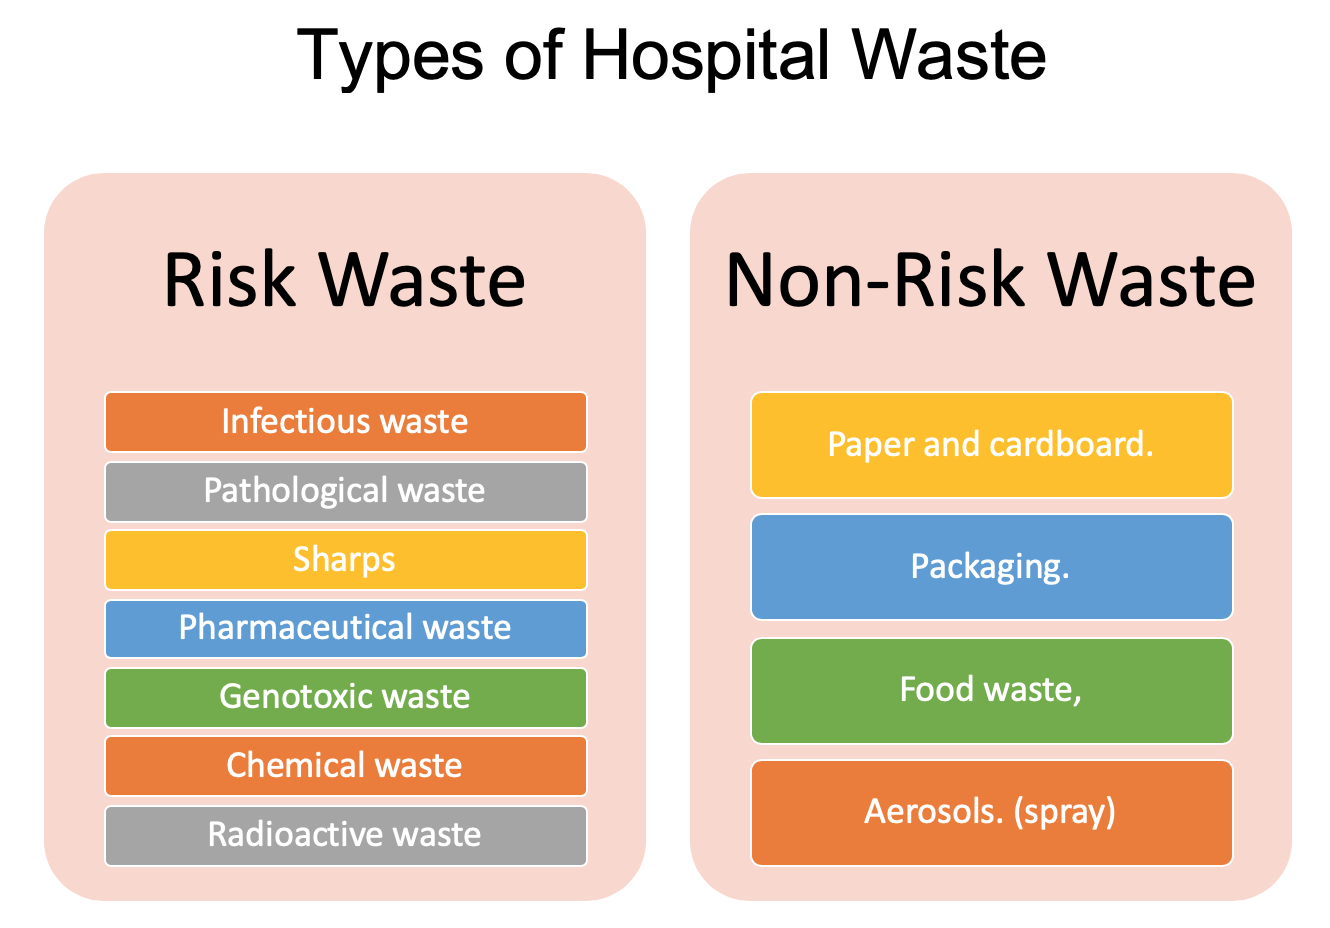 Types of Hospital Waste